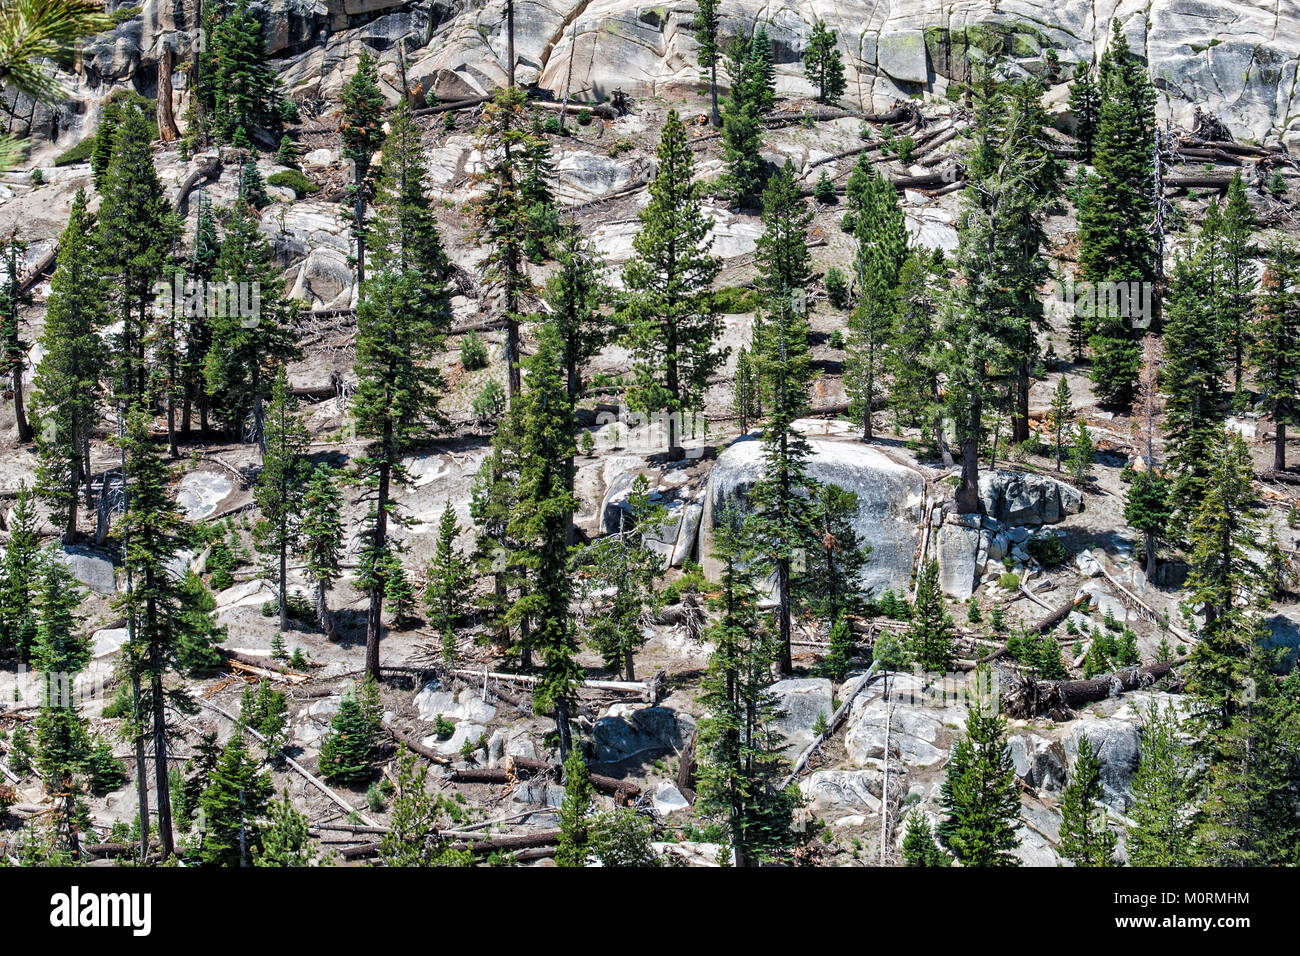 Rocks and Evergreens at Devils Postpile National Monument, Inyo National Forest, Madera County, California, USA - Stock Image